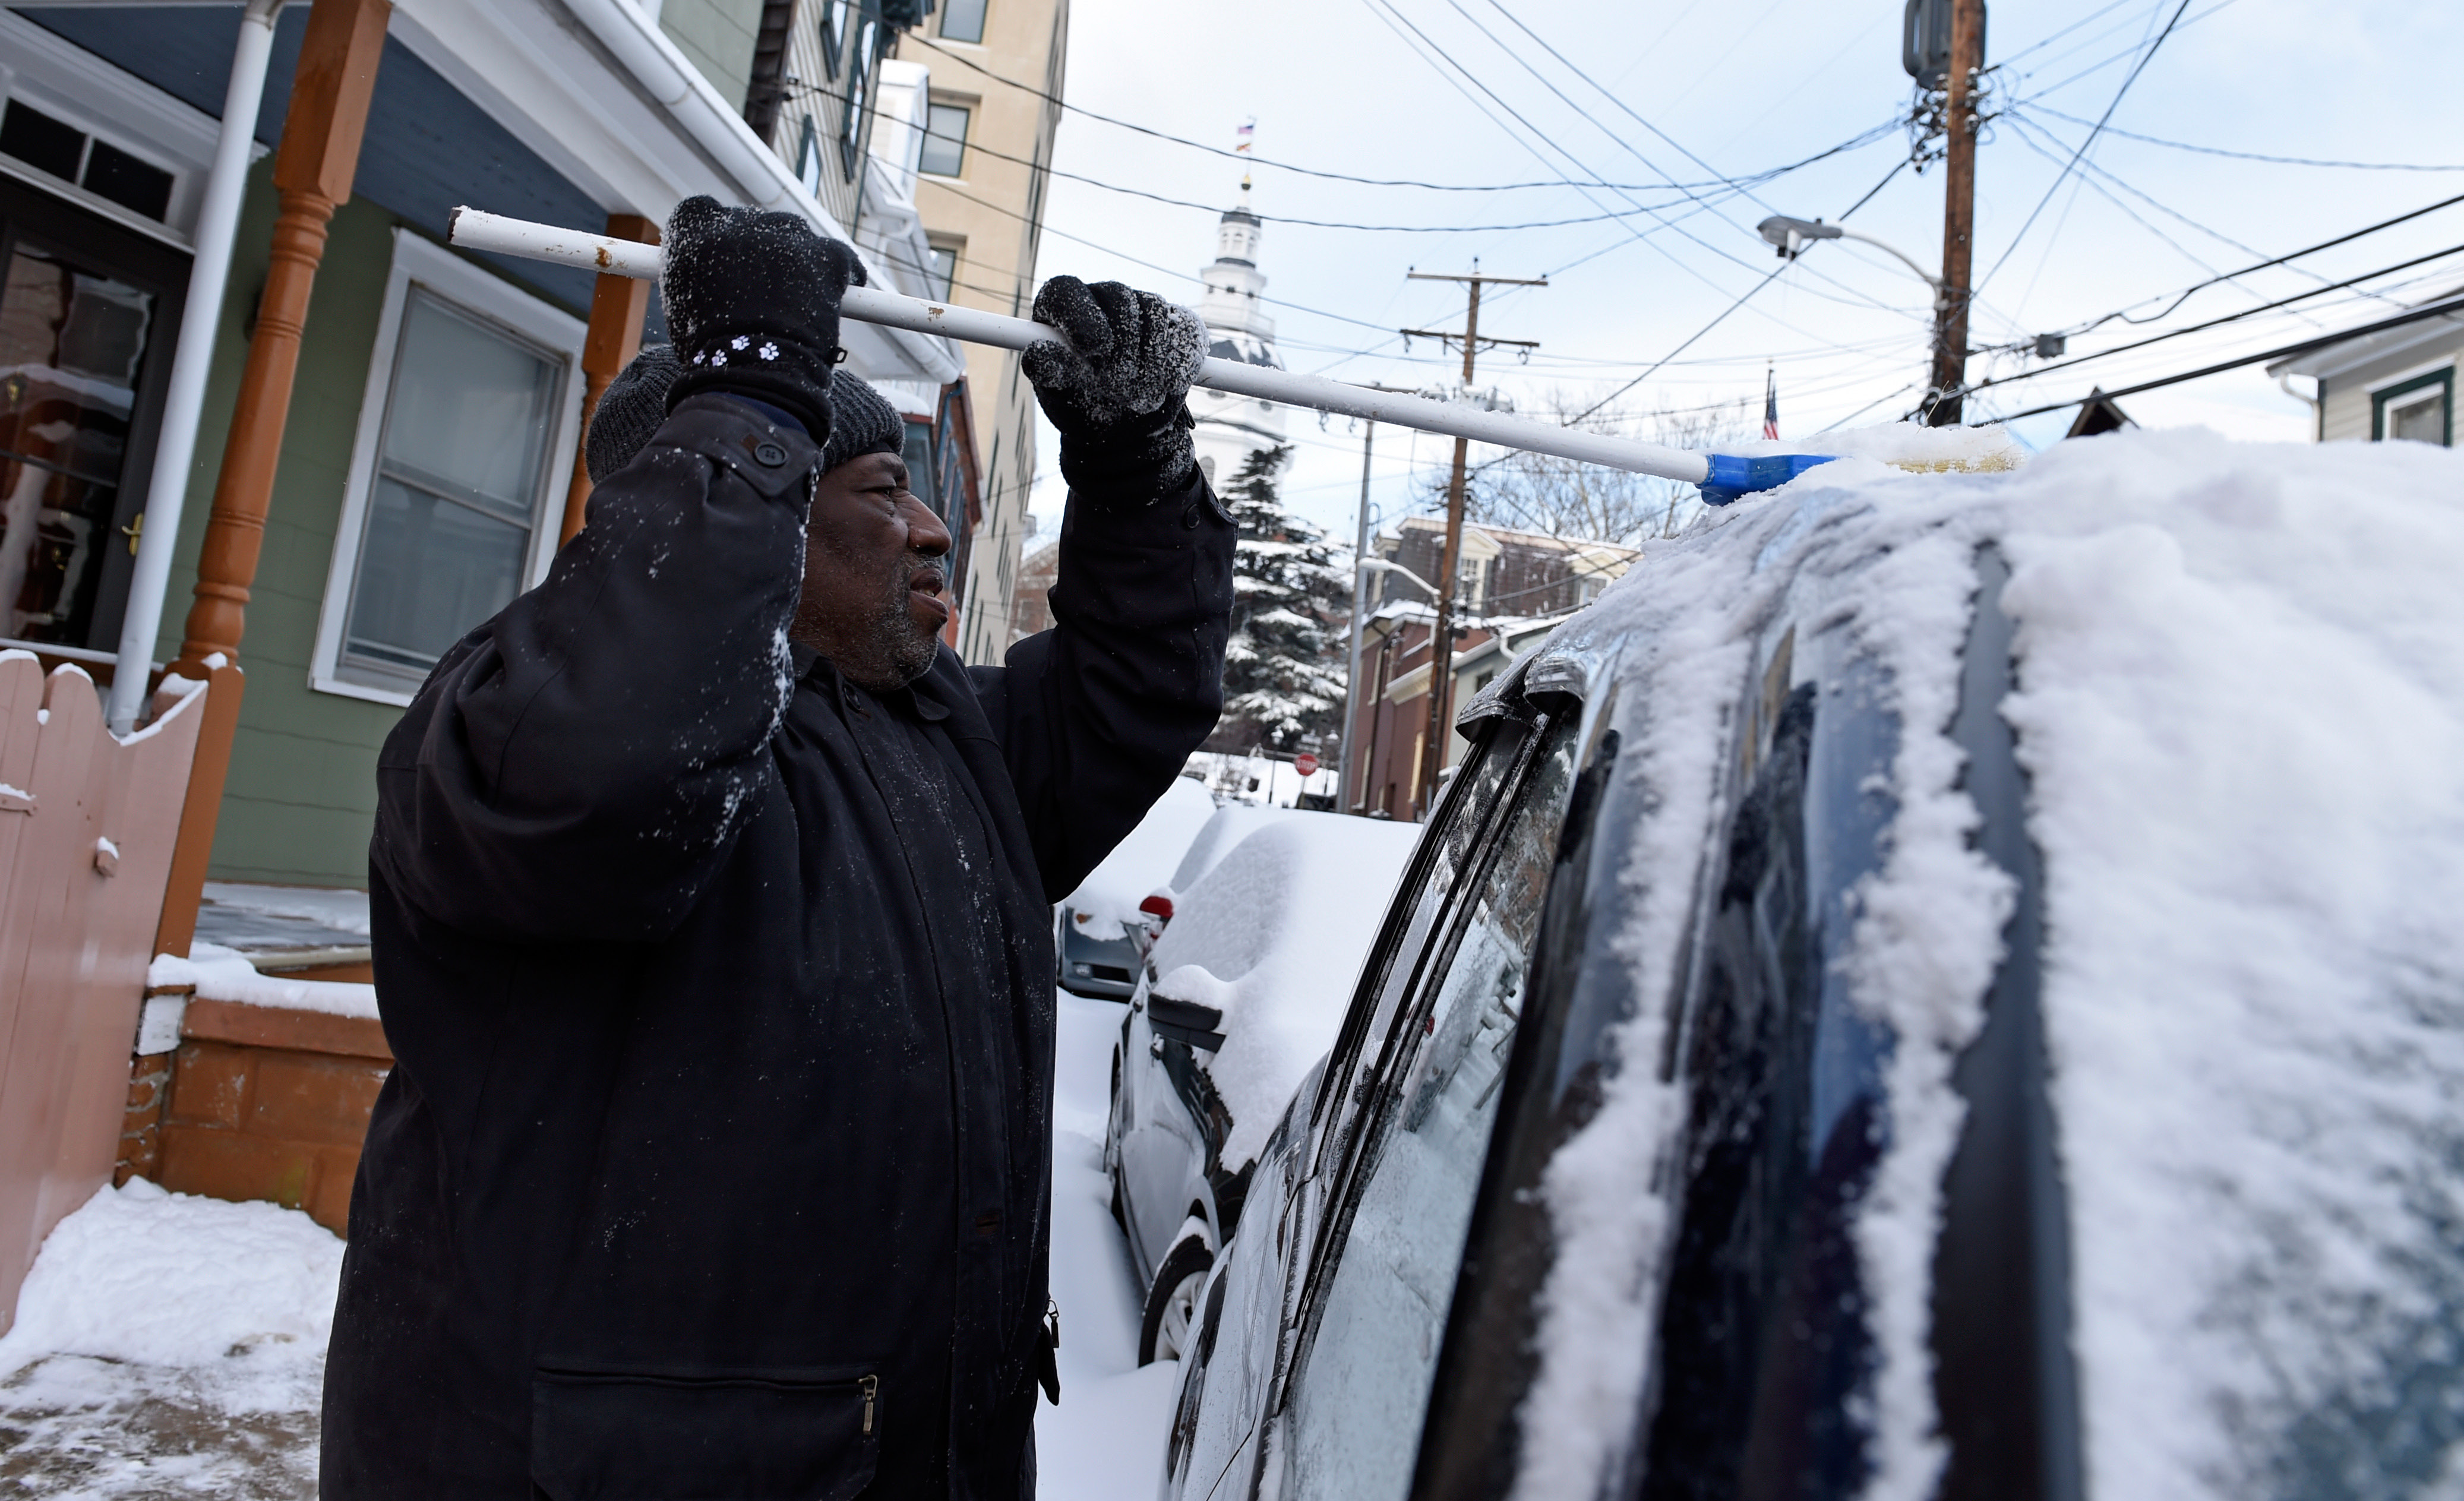 DURHAM, N.C. — A powerful winter storm dumped snow from ...